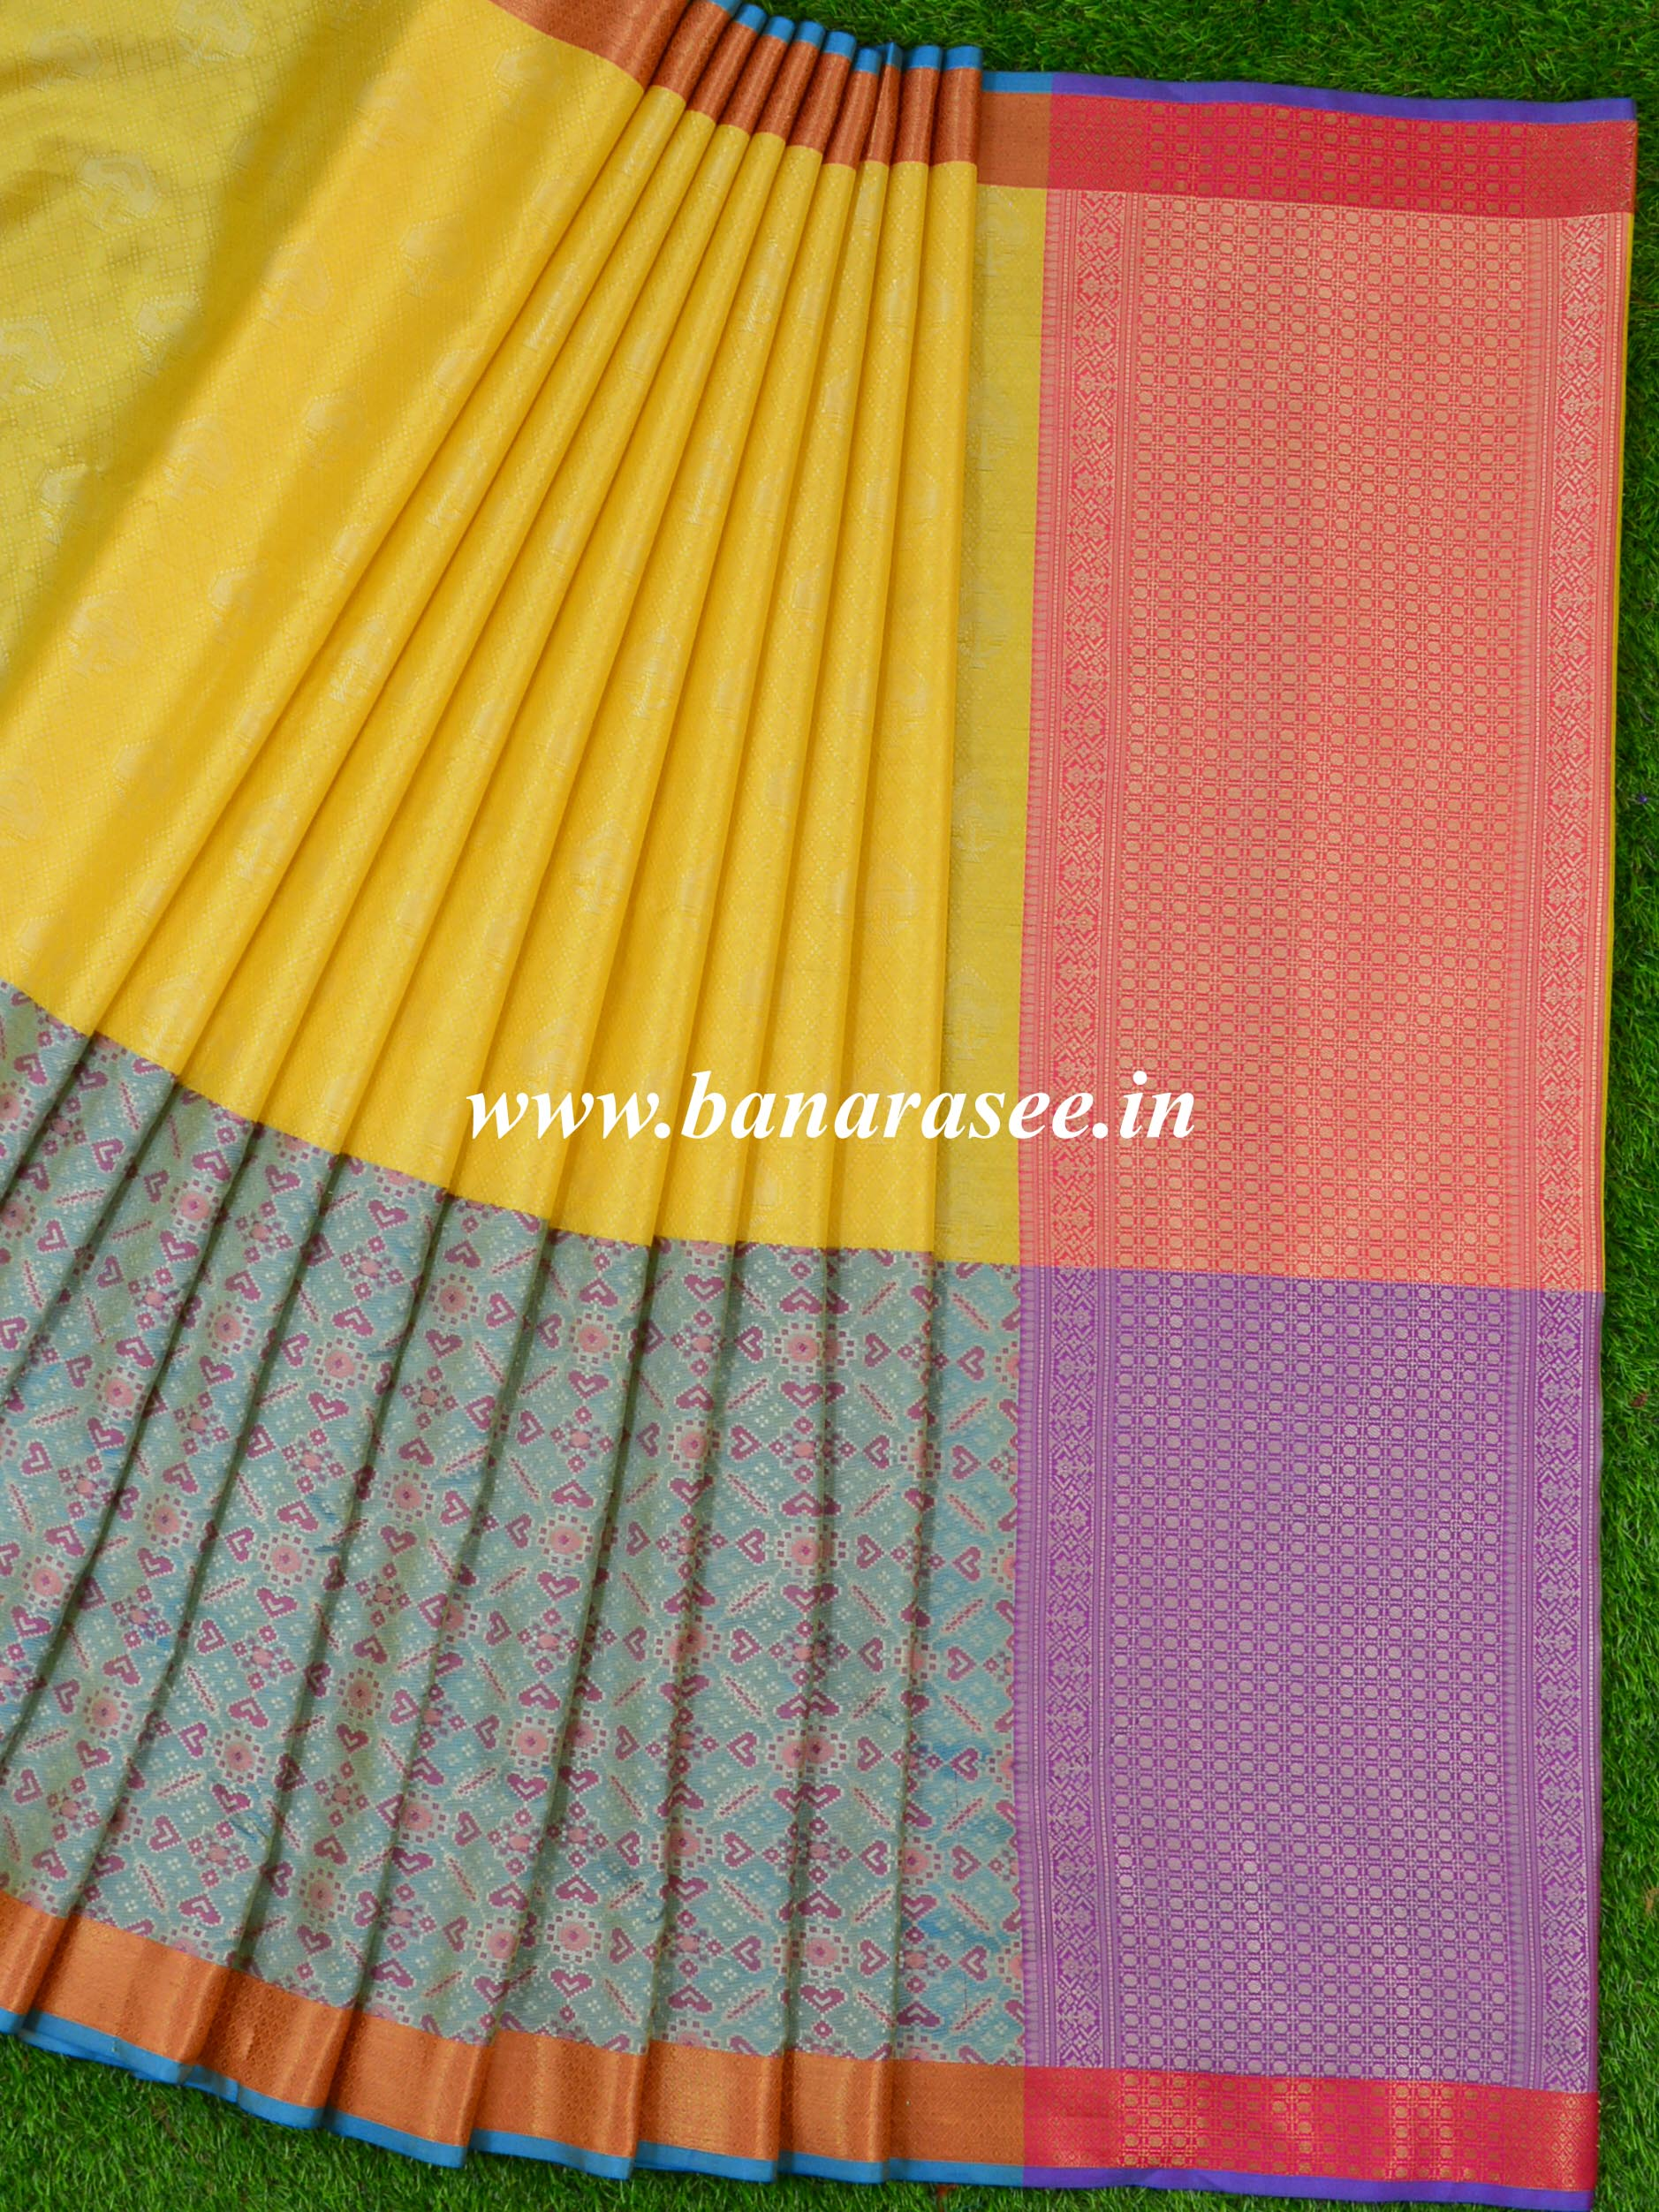 Banarasee Kora Muslin Saree With Tanchoi Weaving With Gharchola Skirt Border-Yellow